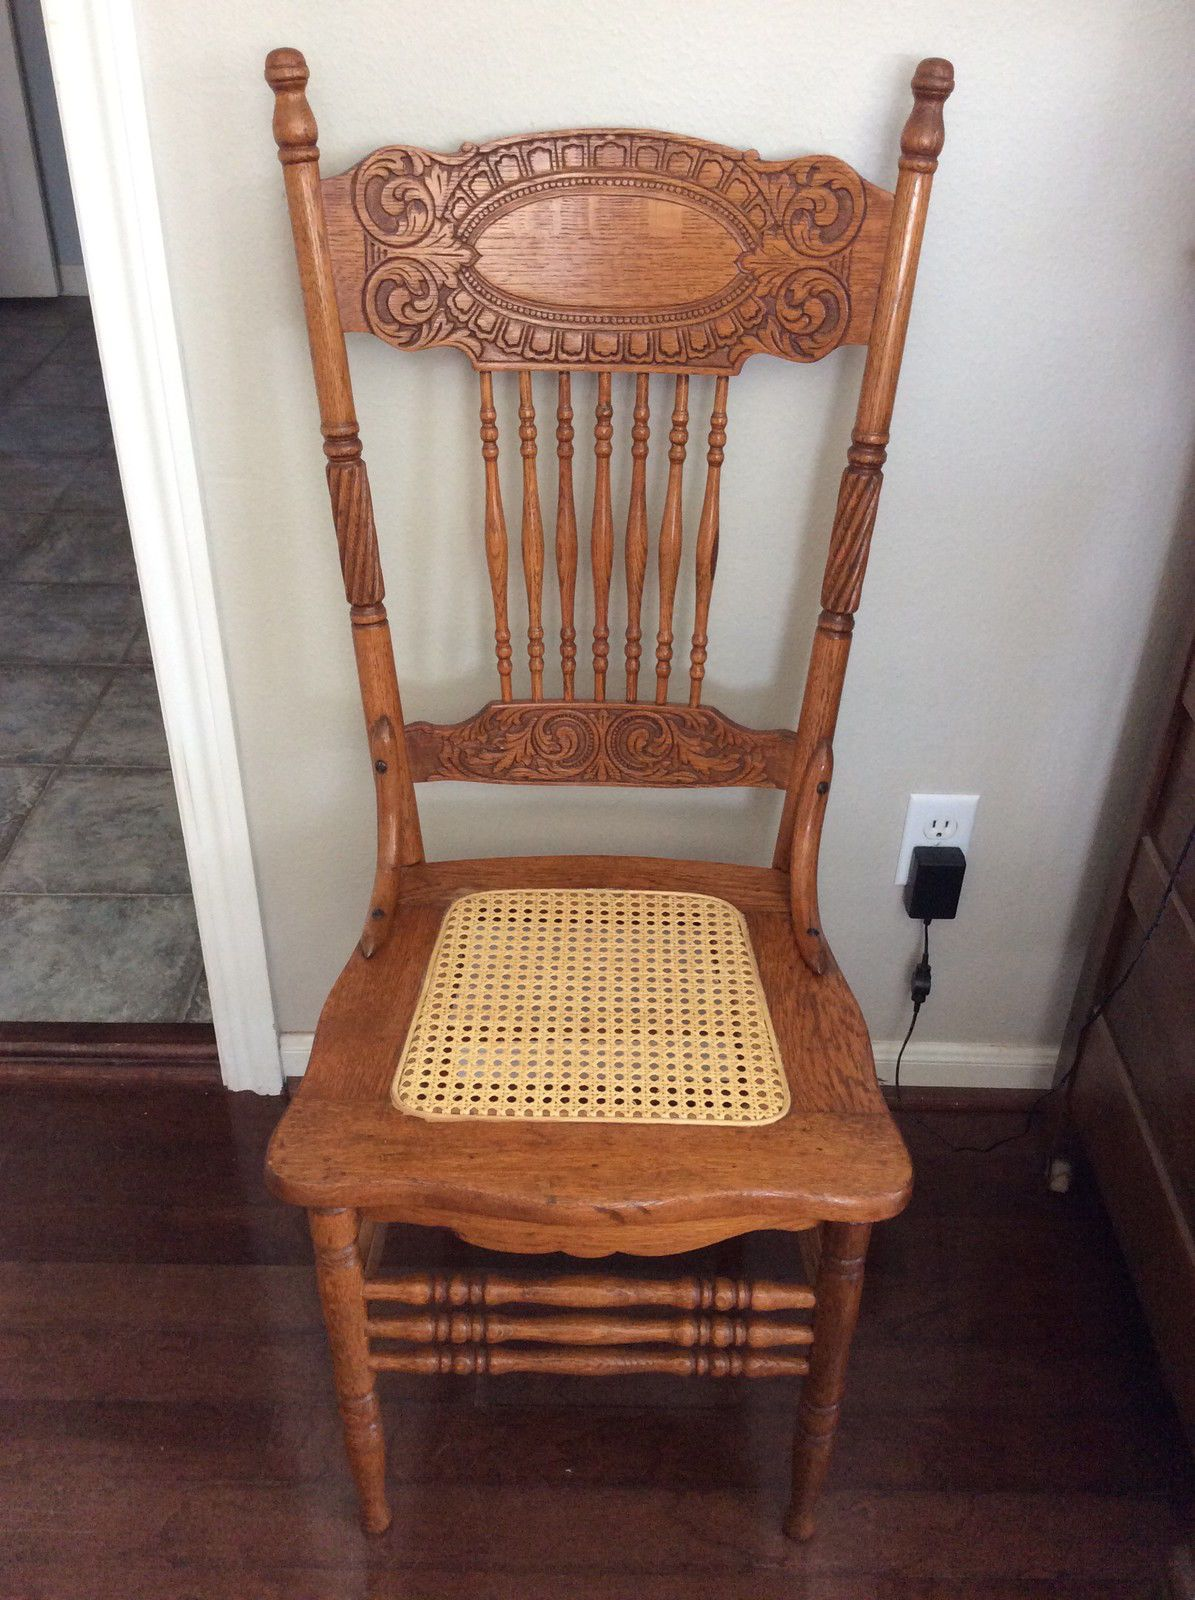 Cane Back Chairs Antique Dining Chair Elastic Seat Covers Oak Larkin 1 Pressed Circa 1900